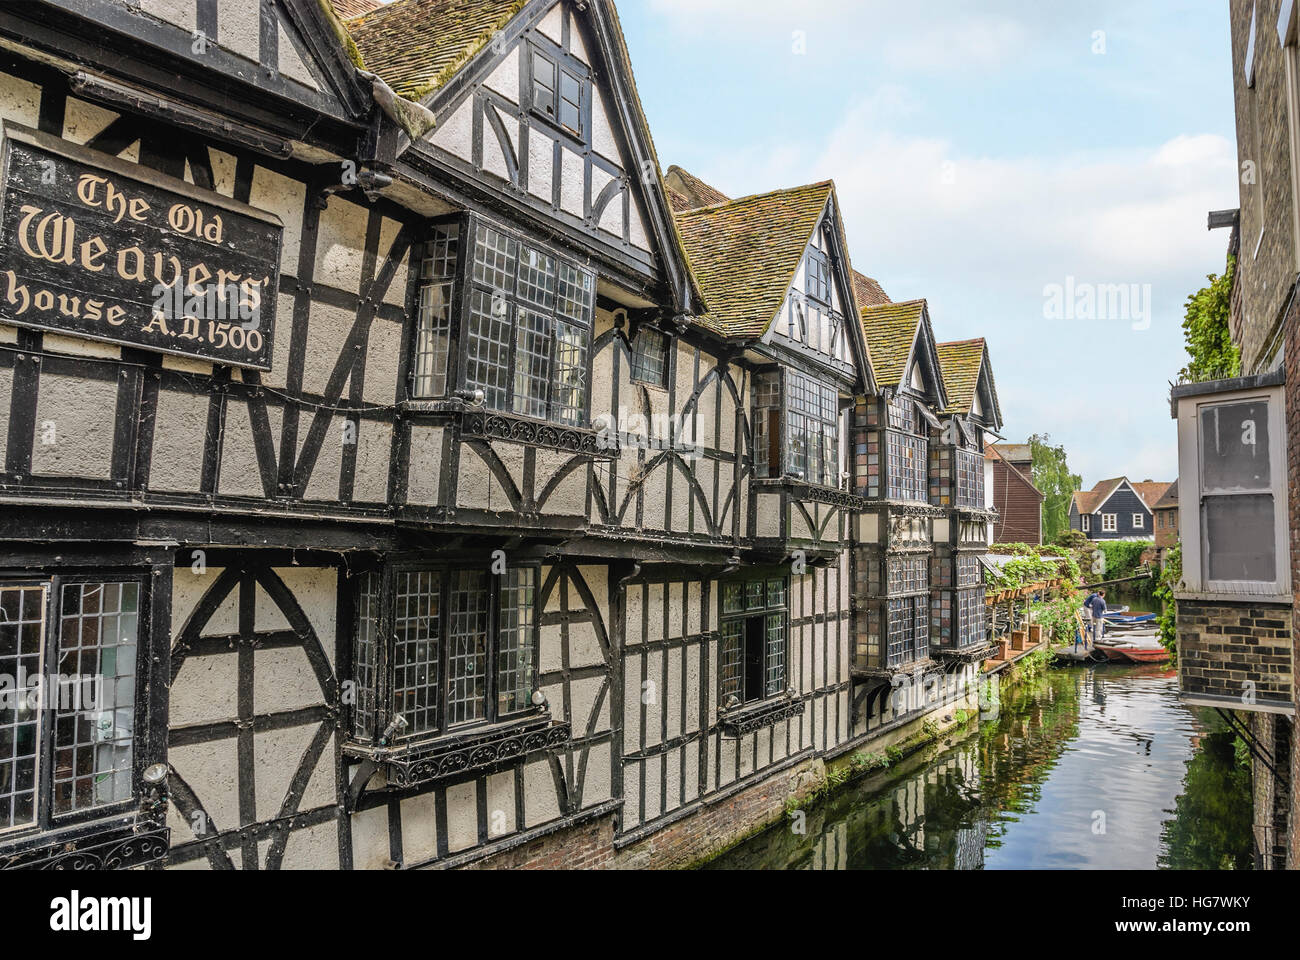 Historical Old Weavers House in the old town center of Canterbury, in the County of Kent, South East England. - Stock Image